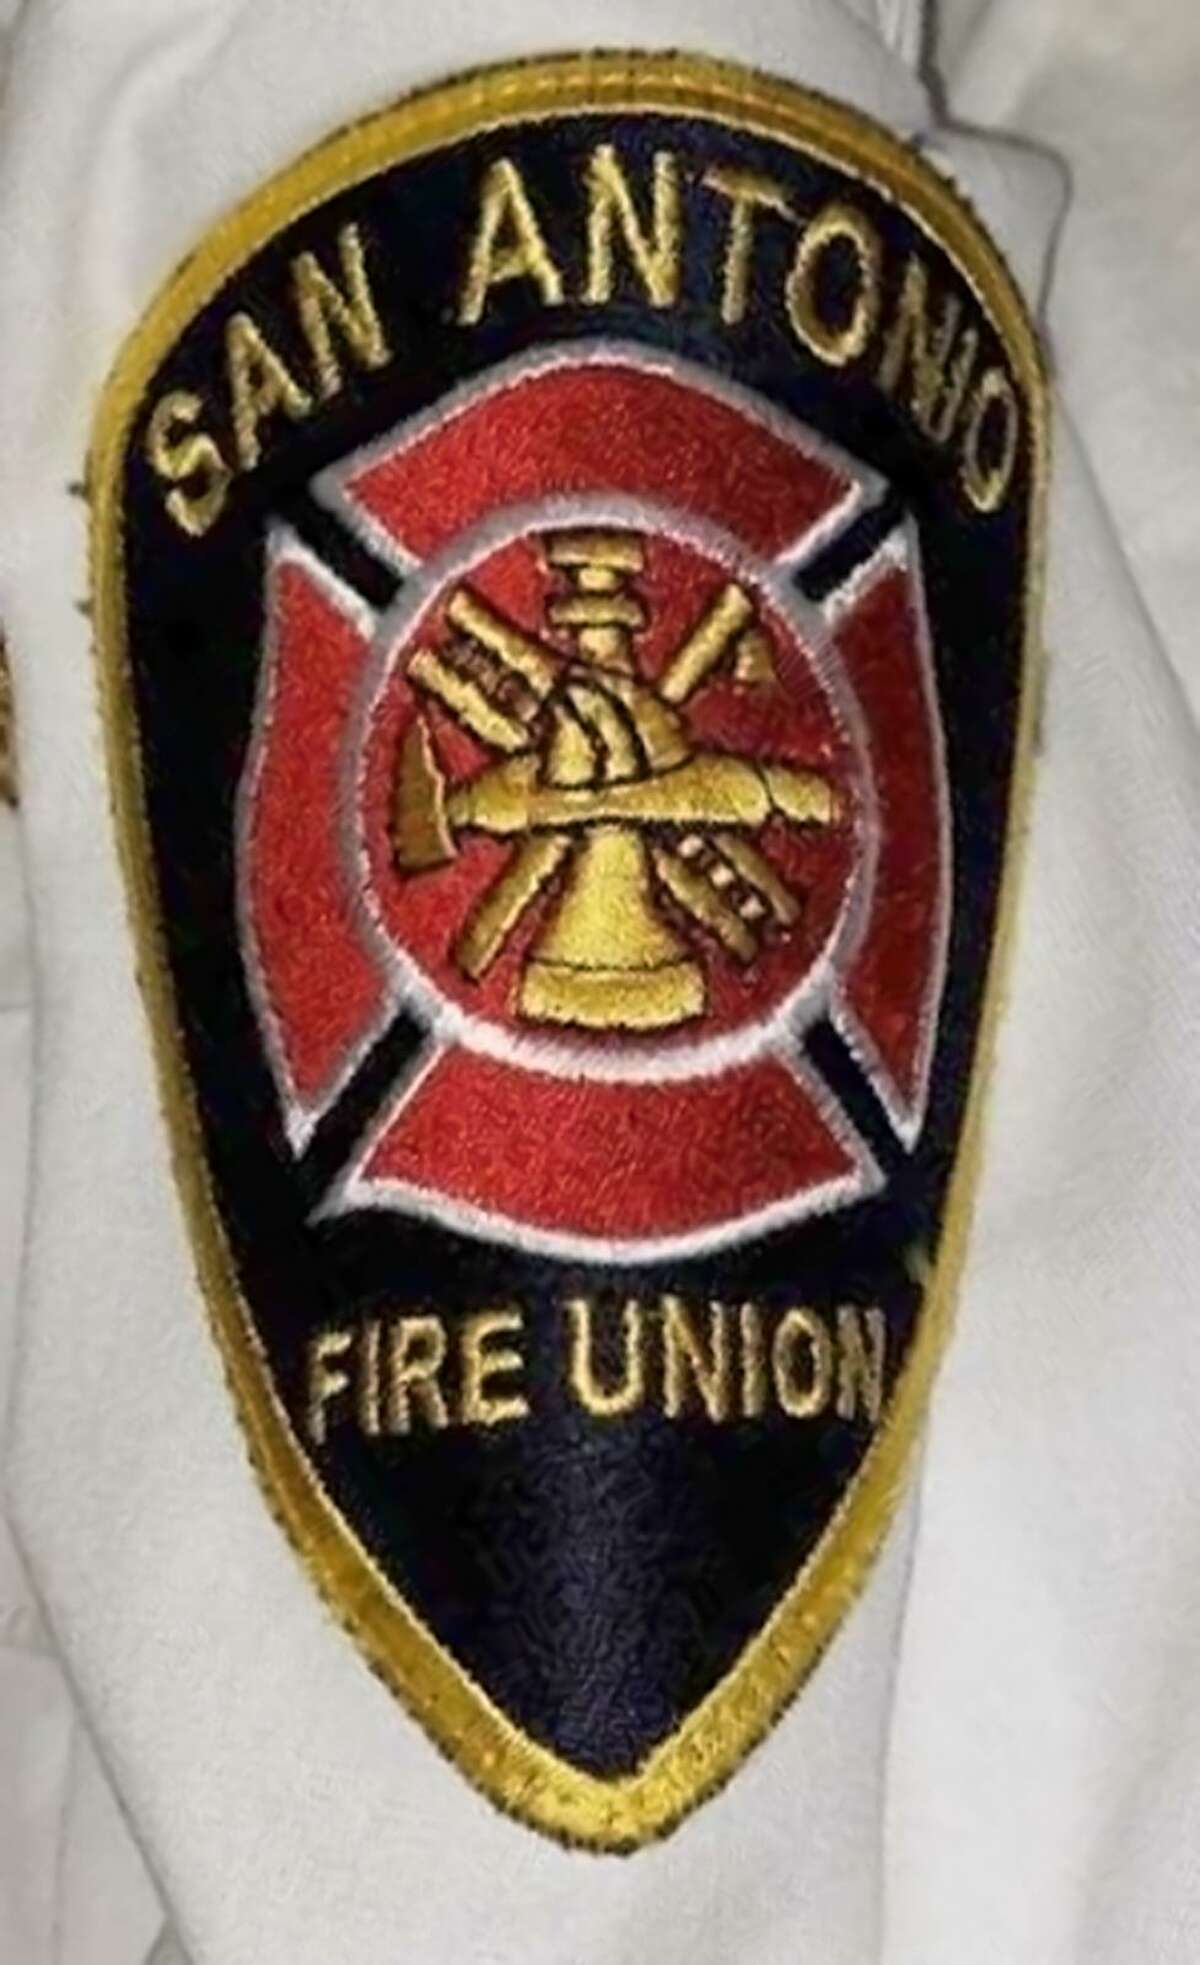 A San Antonio Fire Union patch worn by Chris Steele which closely resembles the official San Antonio Fire Department patch.